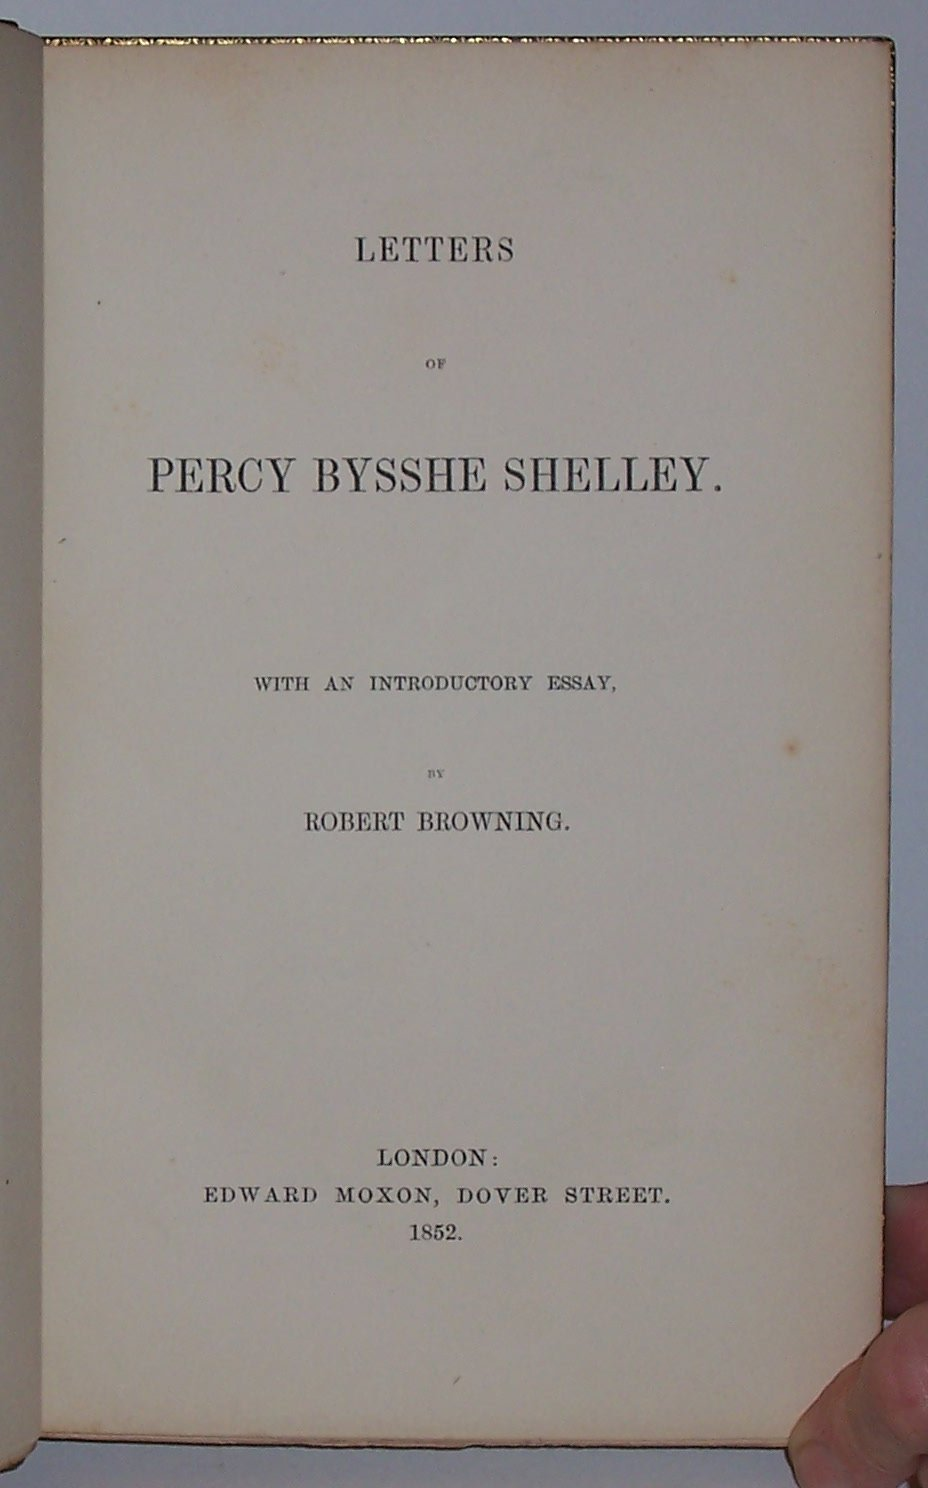 Percy Bysshe Shelley Shelley, Percy Bysshe (Poetry Criticism) - Essay